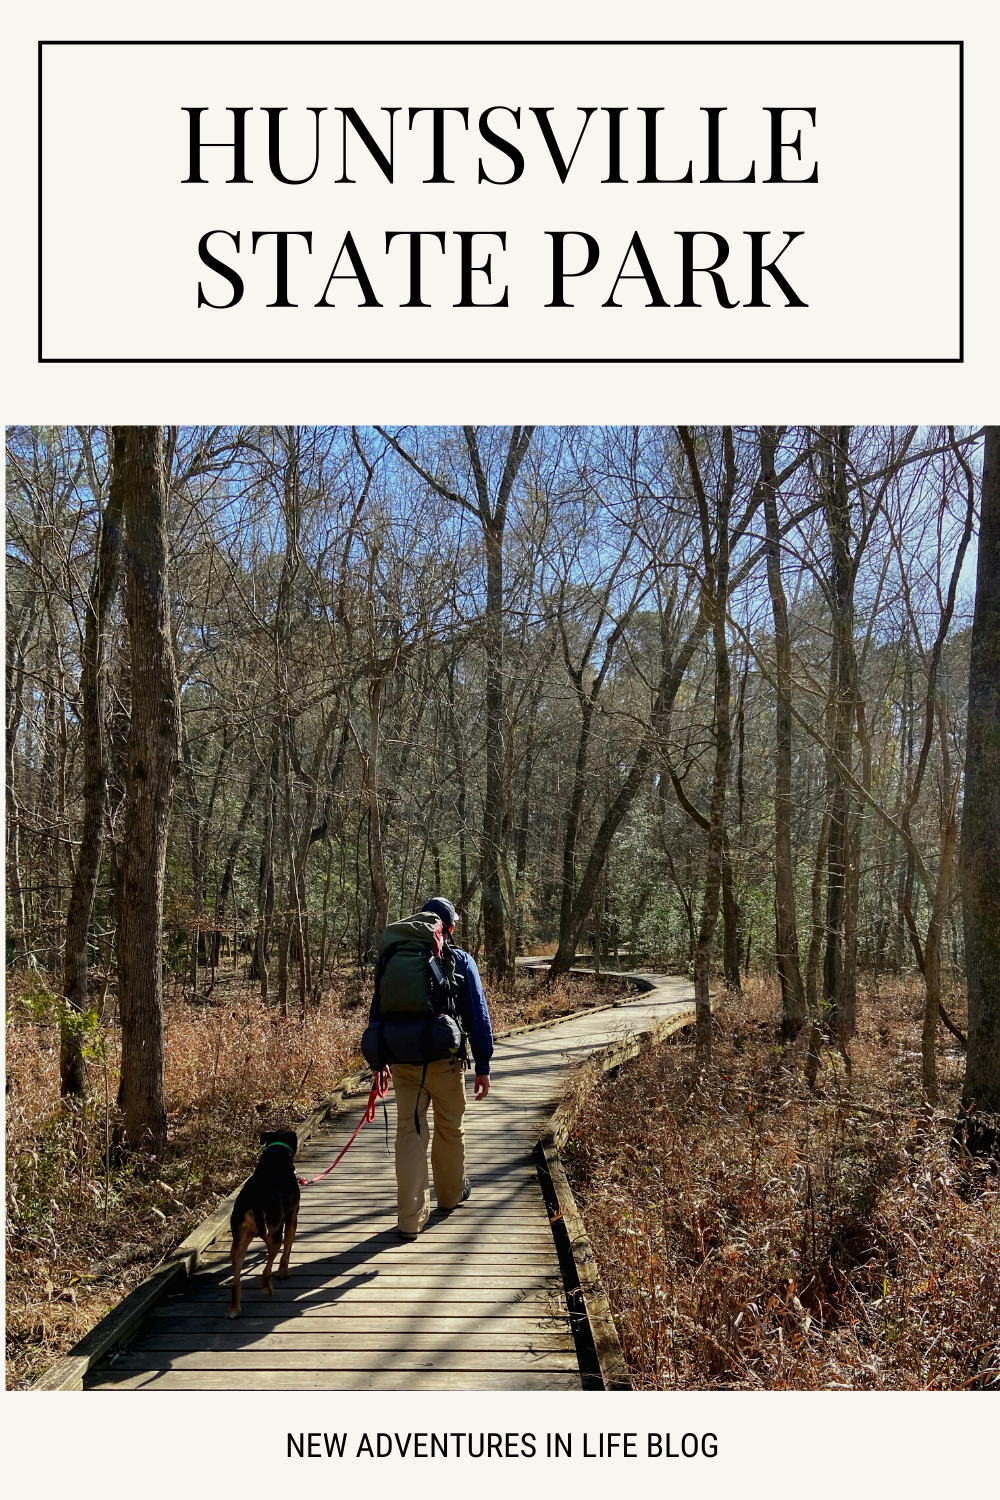 man with large backpack and dog walking along wooden walkway in huntsville state park